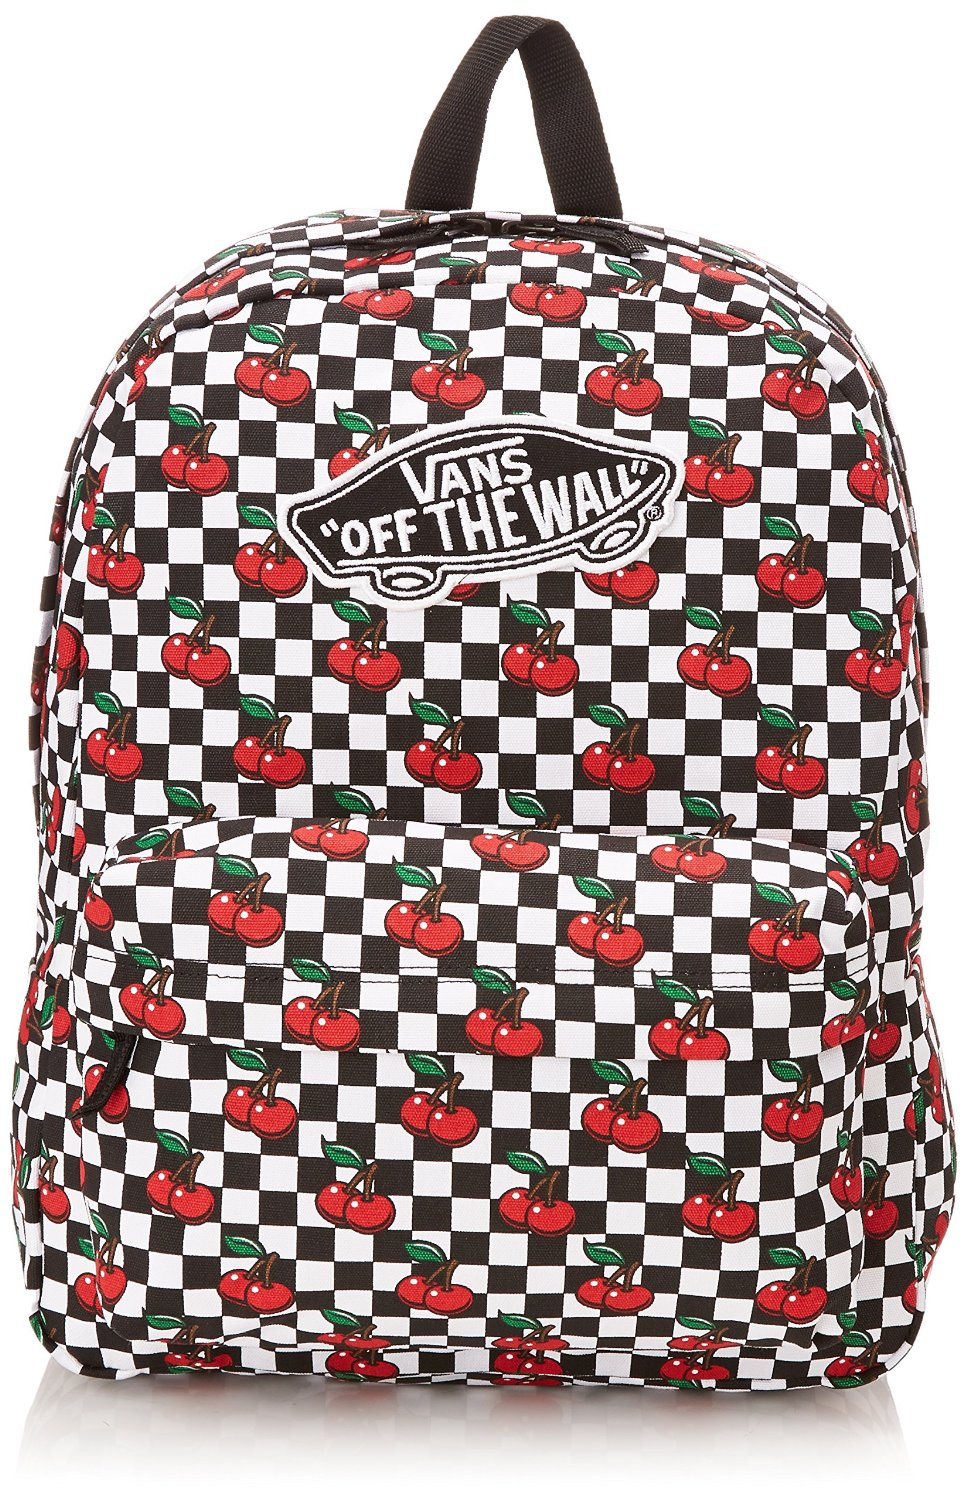 6f1246e3ac Buy Vans Womens Realm Backpack in Cheap Price on Alibaba.com